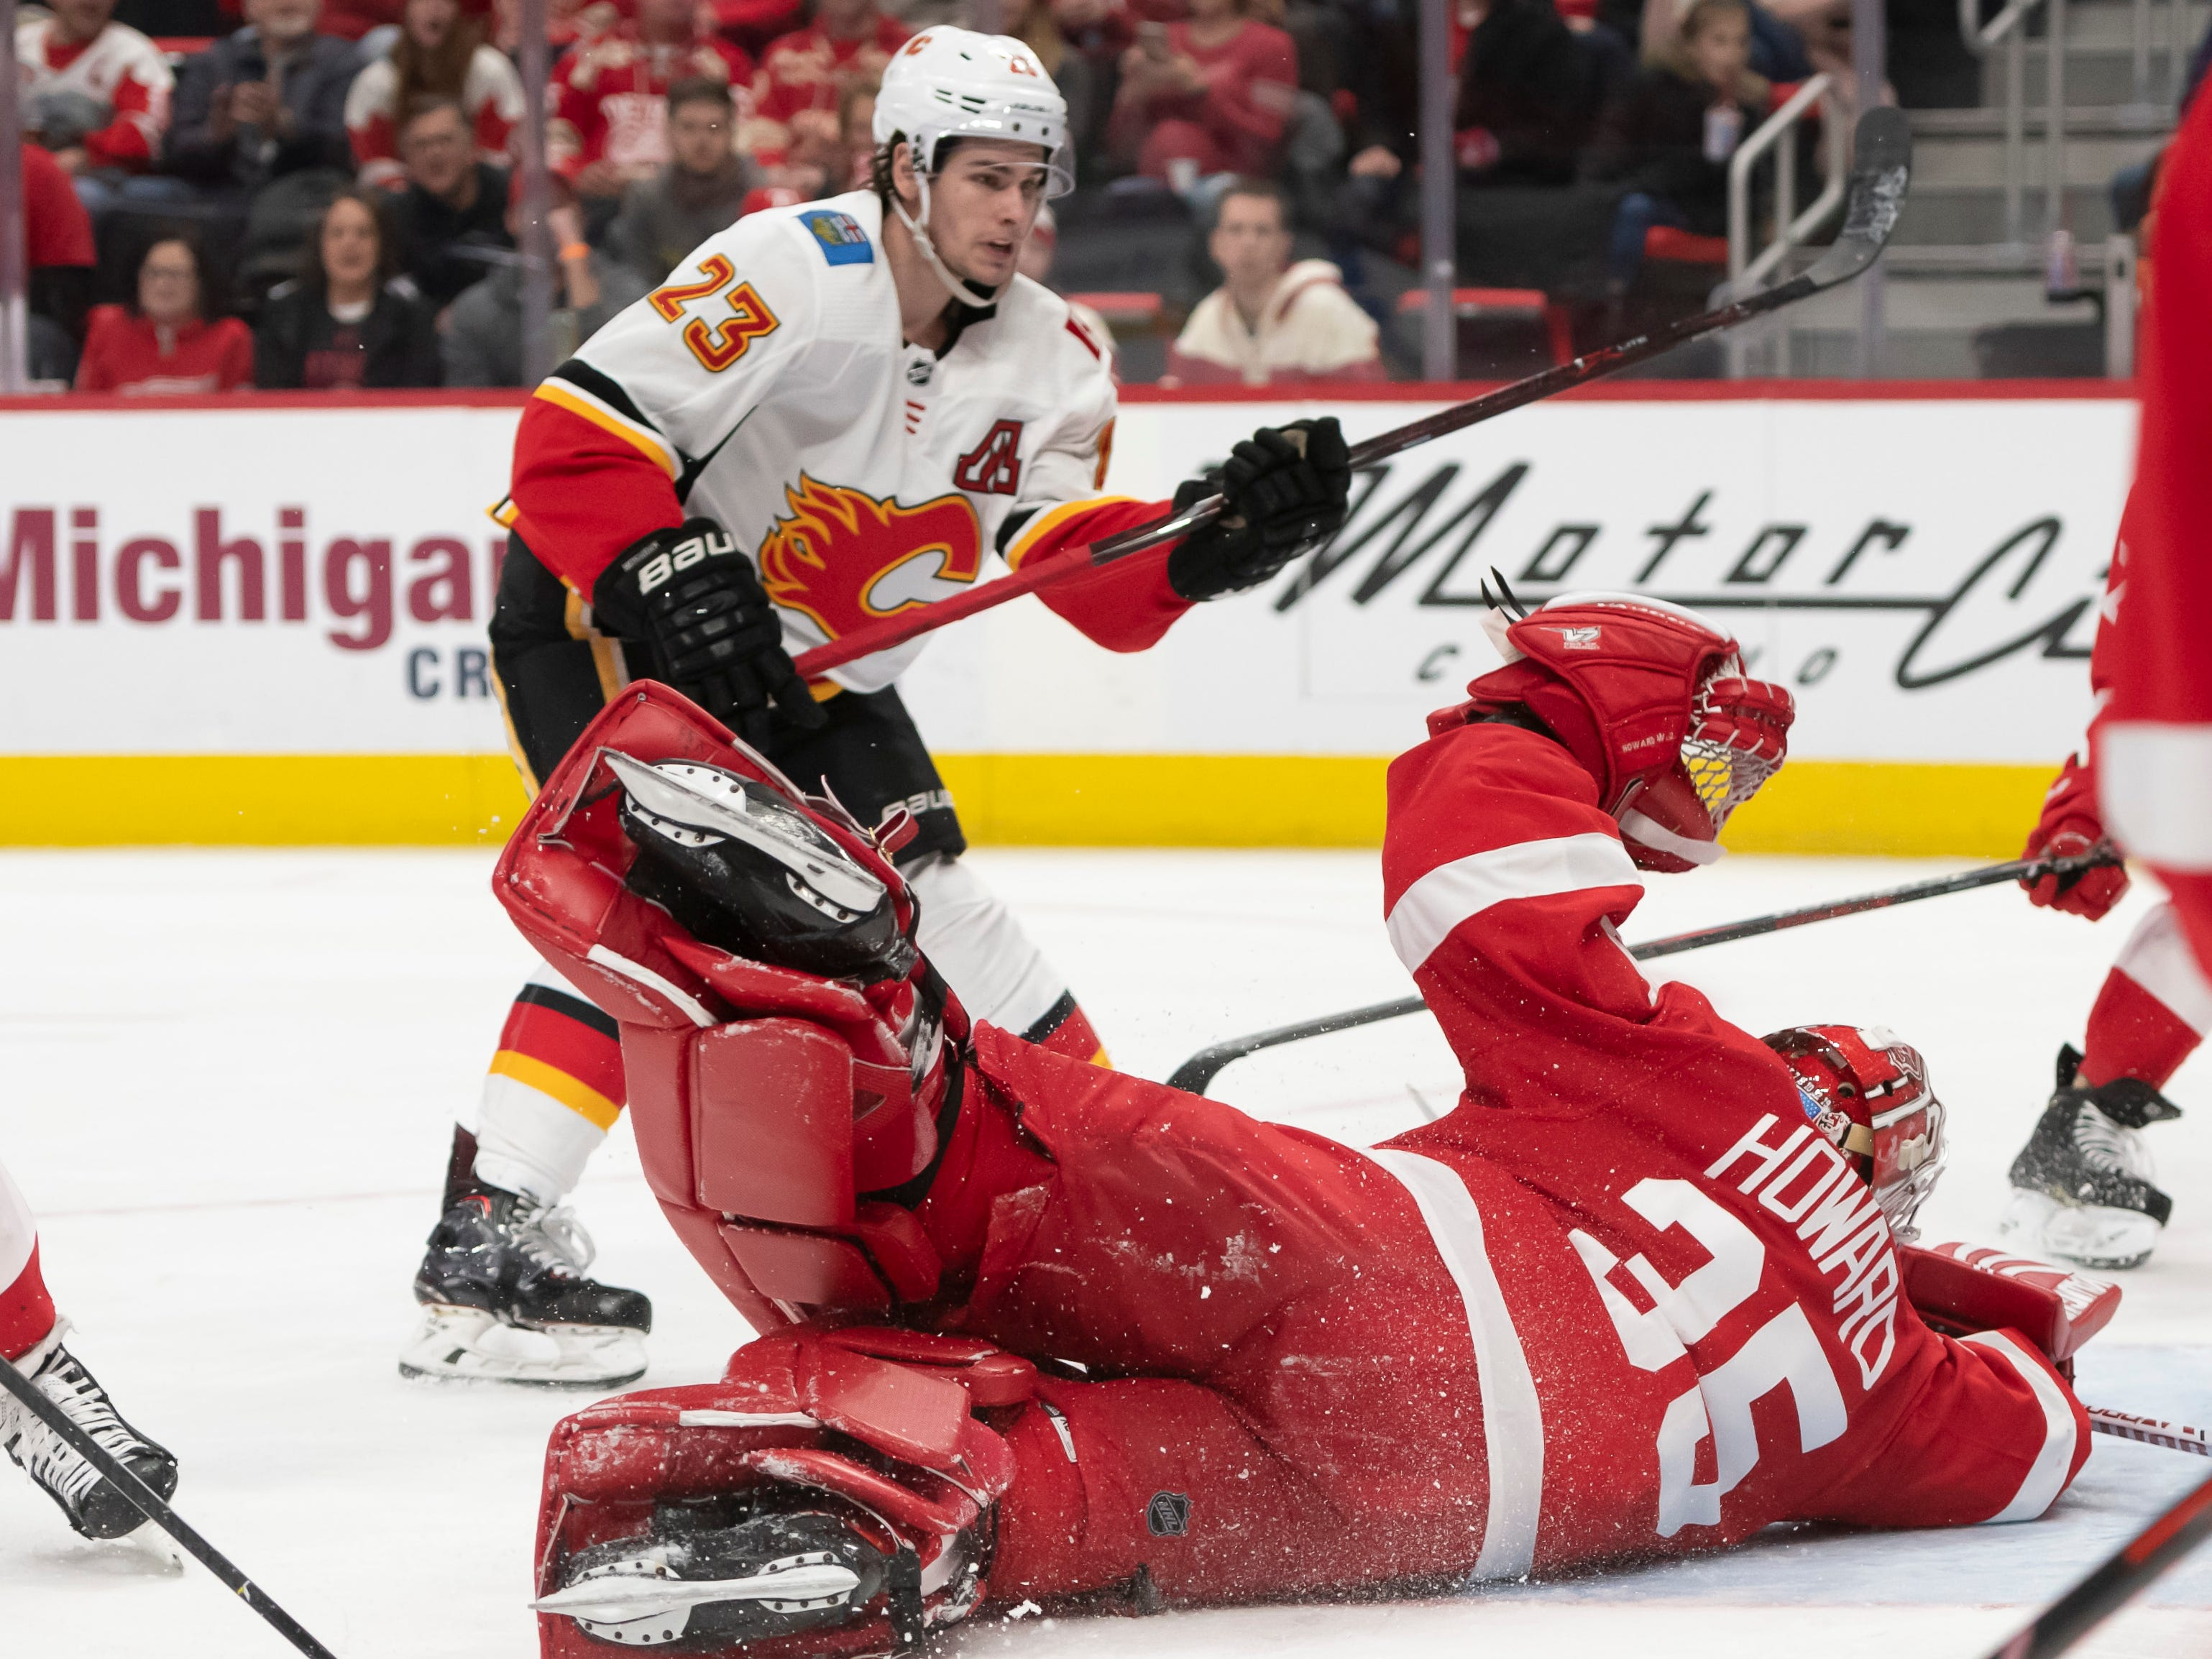 Calgary center Sean Monahan sends the puck past Detroit goaltender Jimmy Howard for a goal in the second period.